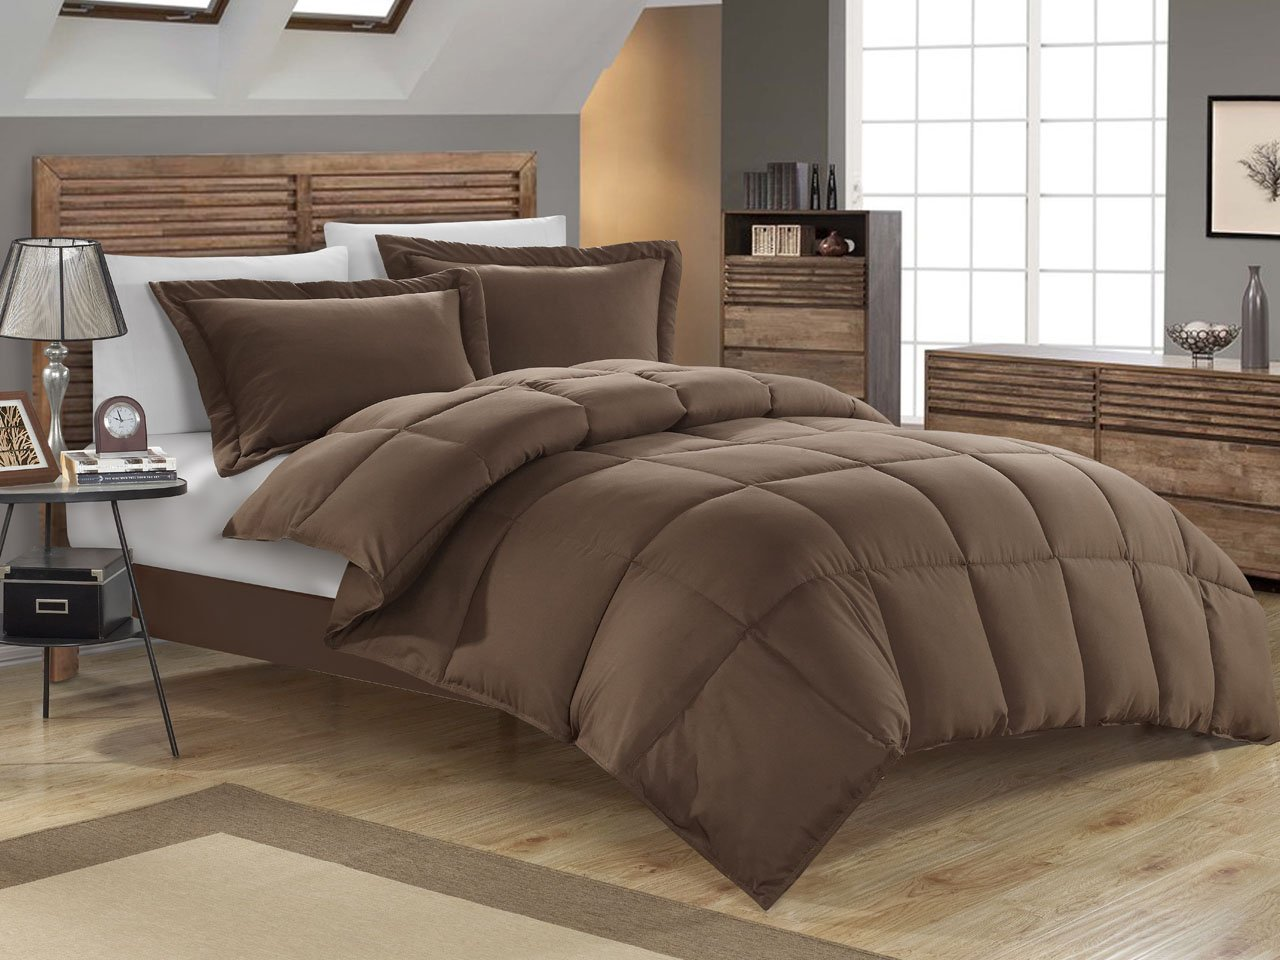 king brown comforter set sets comforters bedding chocolate luxury